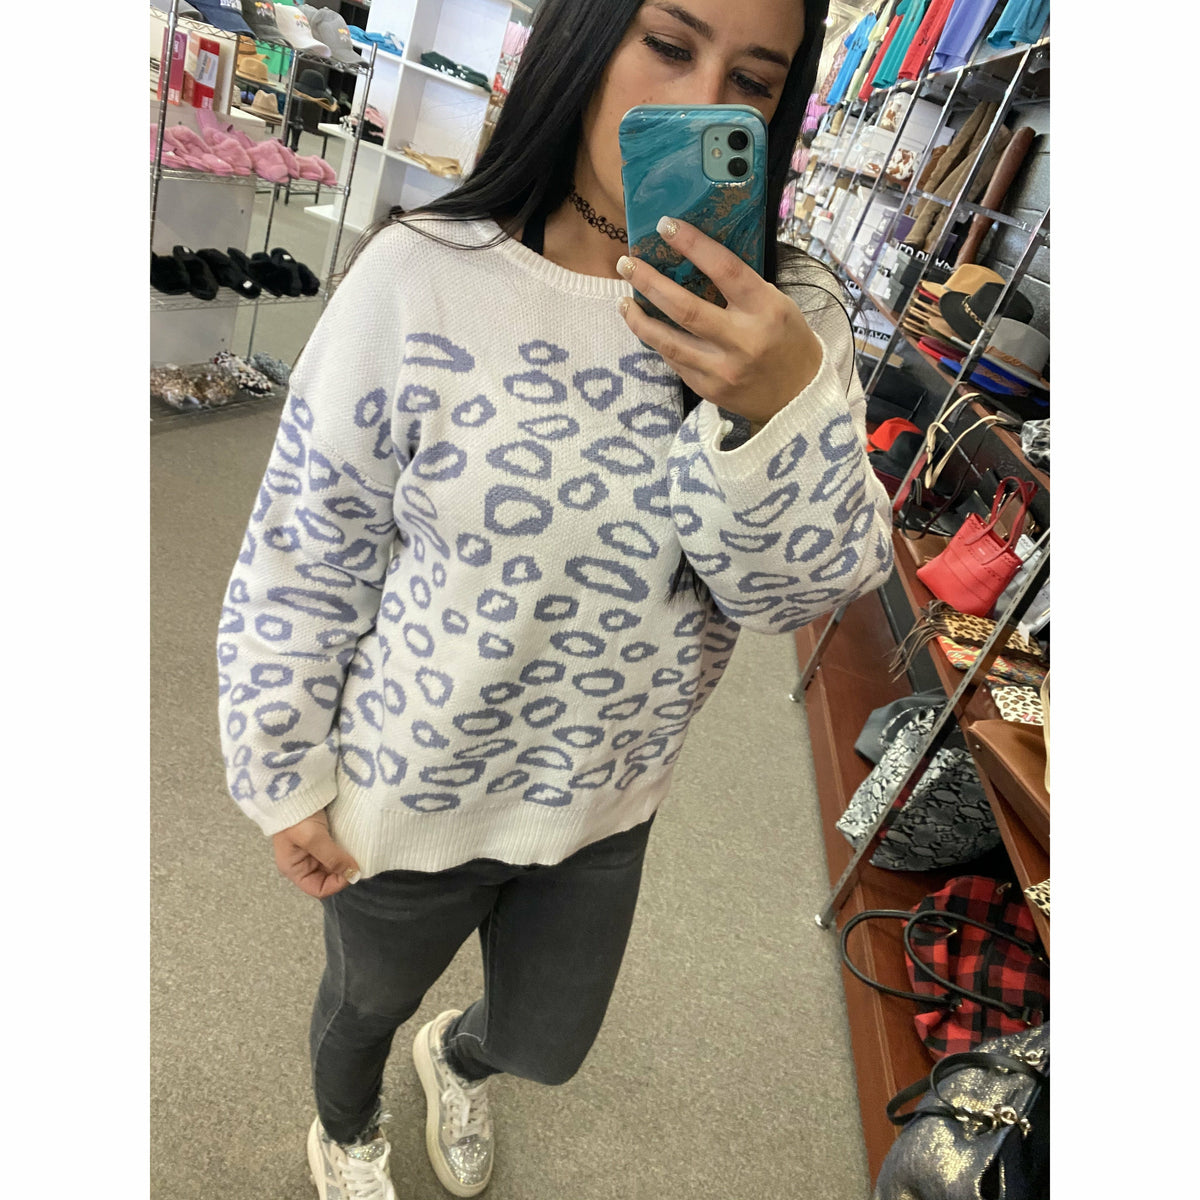 our Favaorite White/Grey Cheetah Sweater